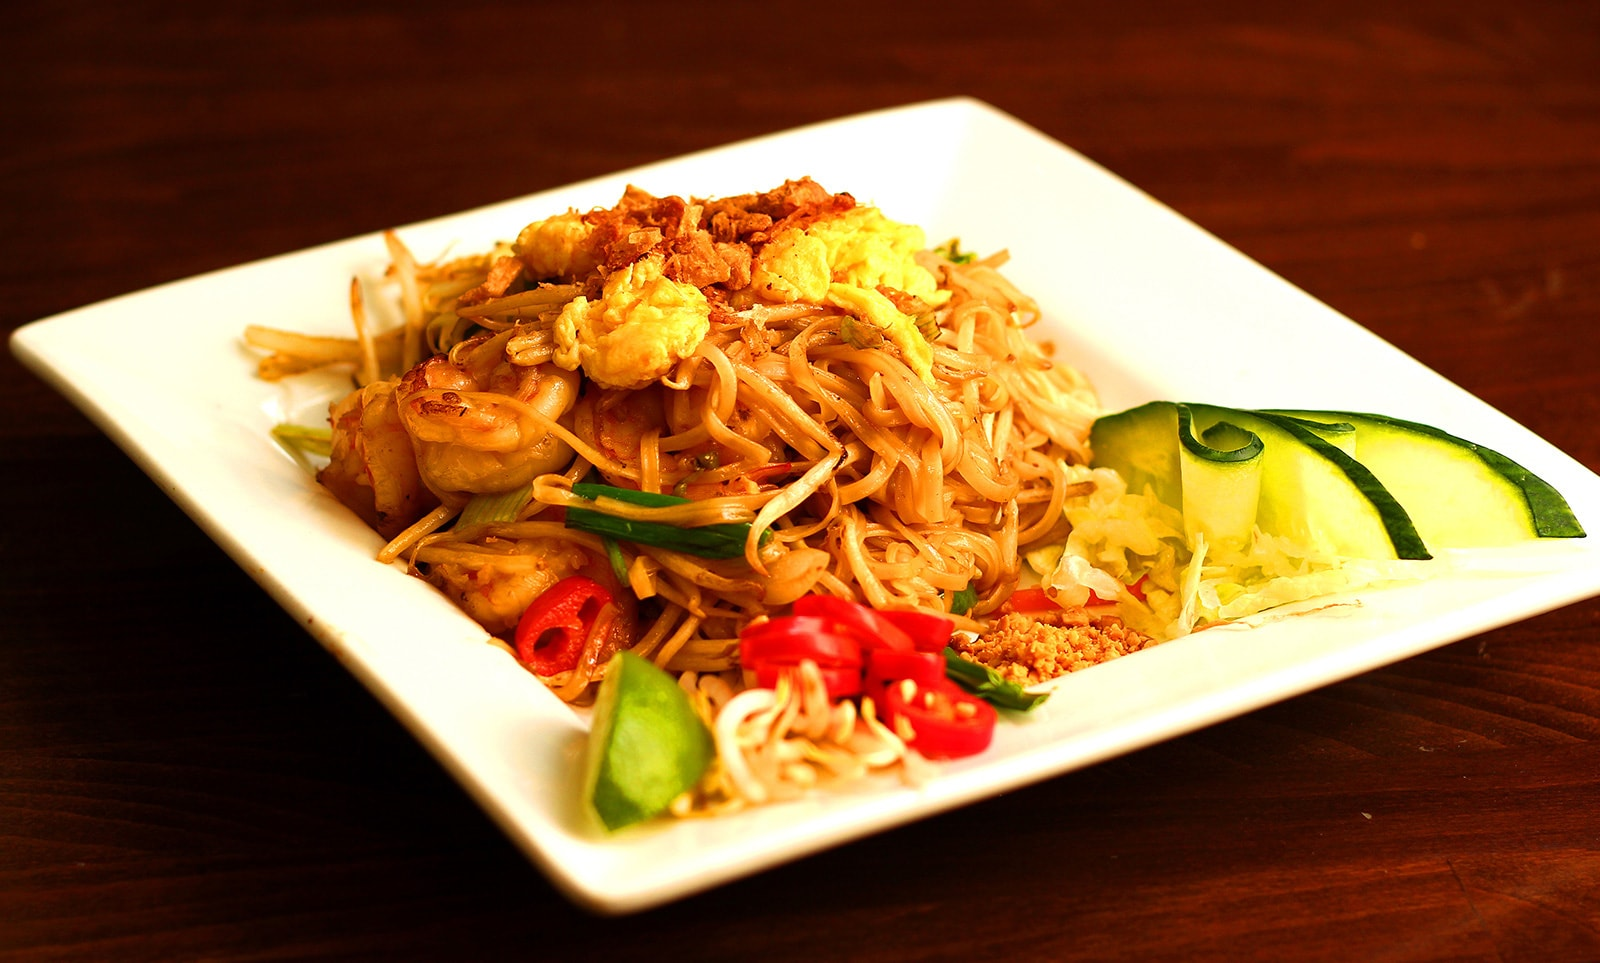 King Prawn Pad Thai